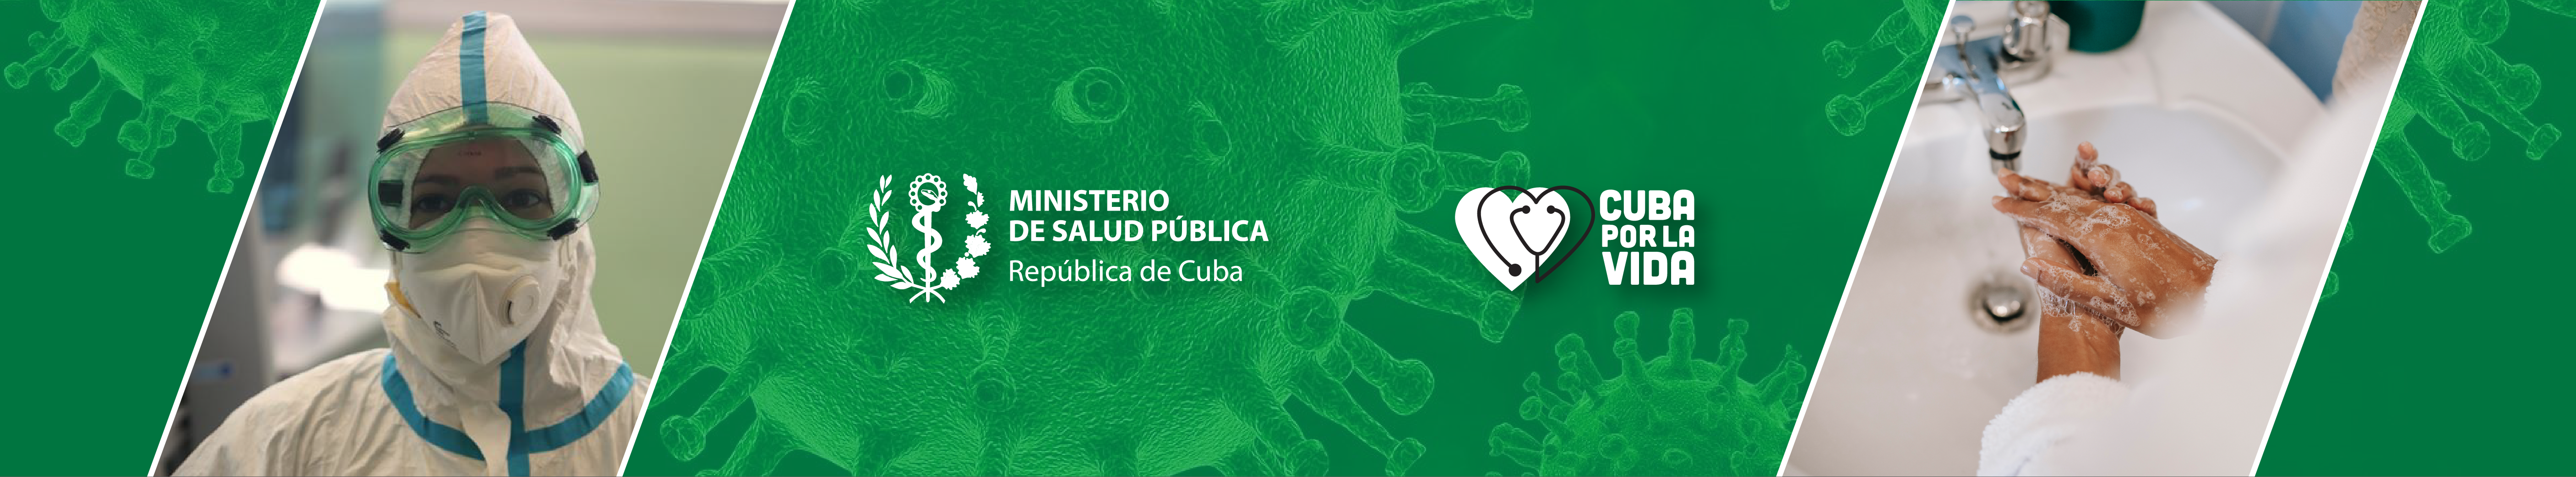 Official government site of the Ministry of Public Health in Cuba